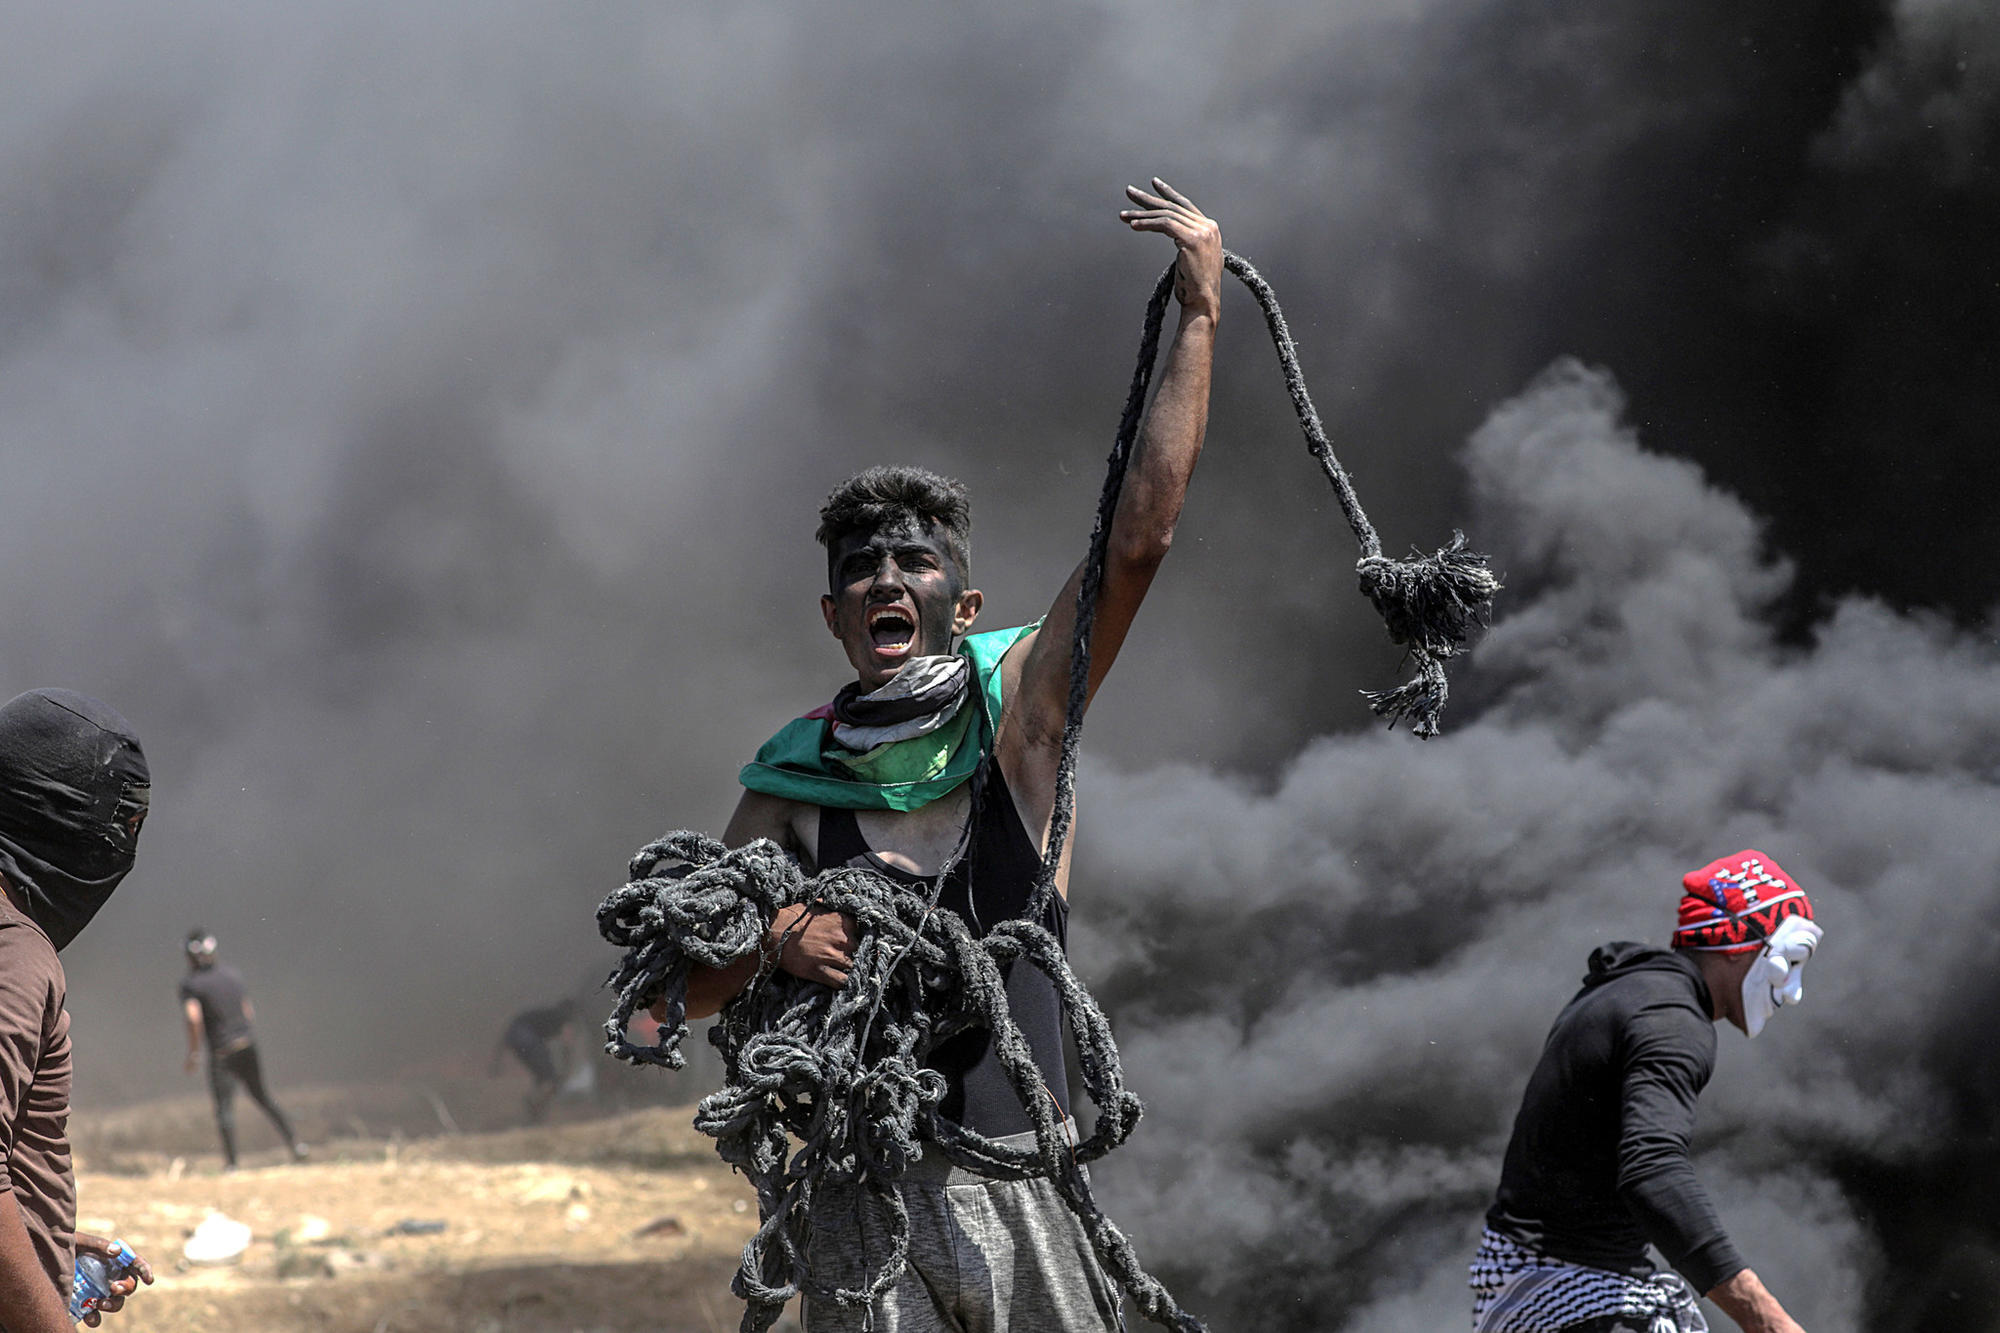 Who's to blame for the Gaza violence?